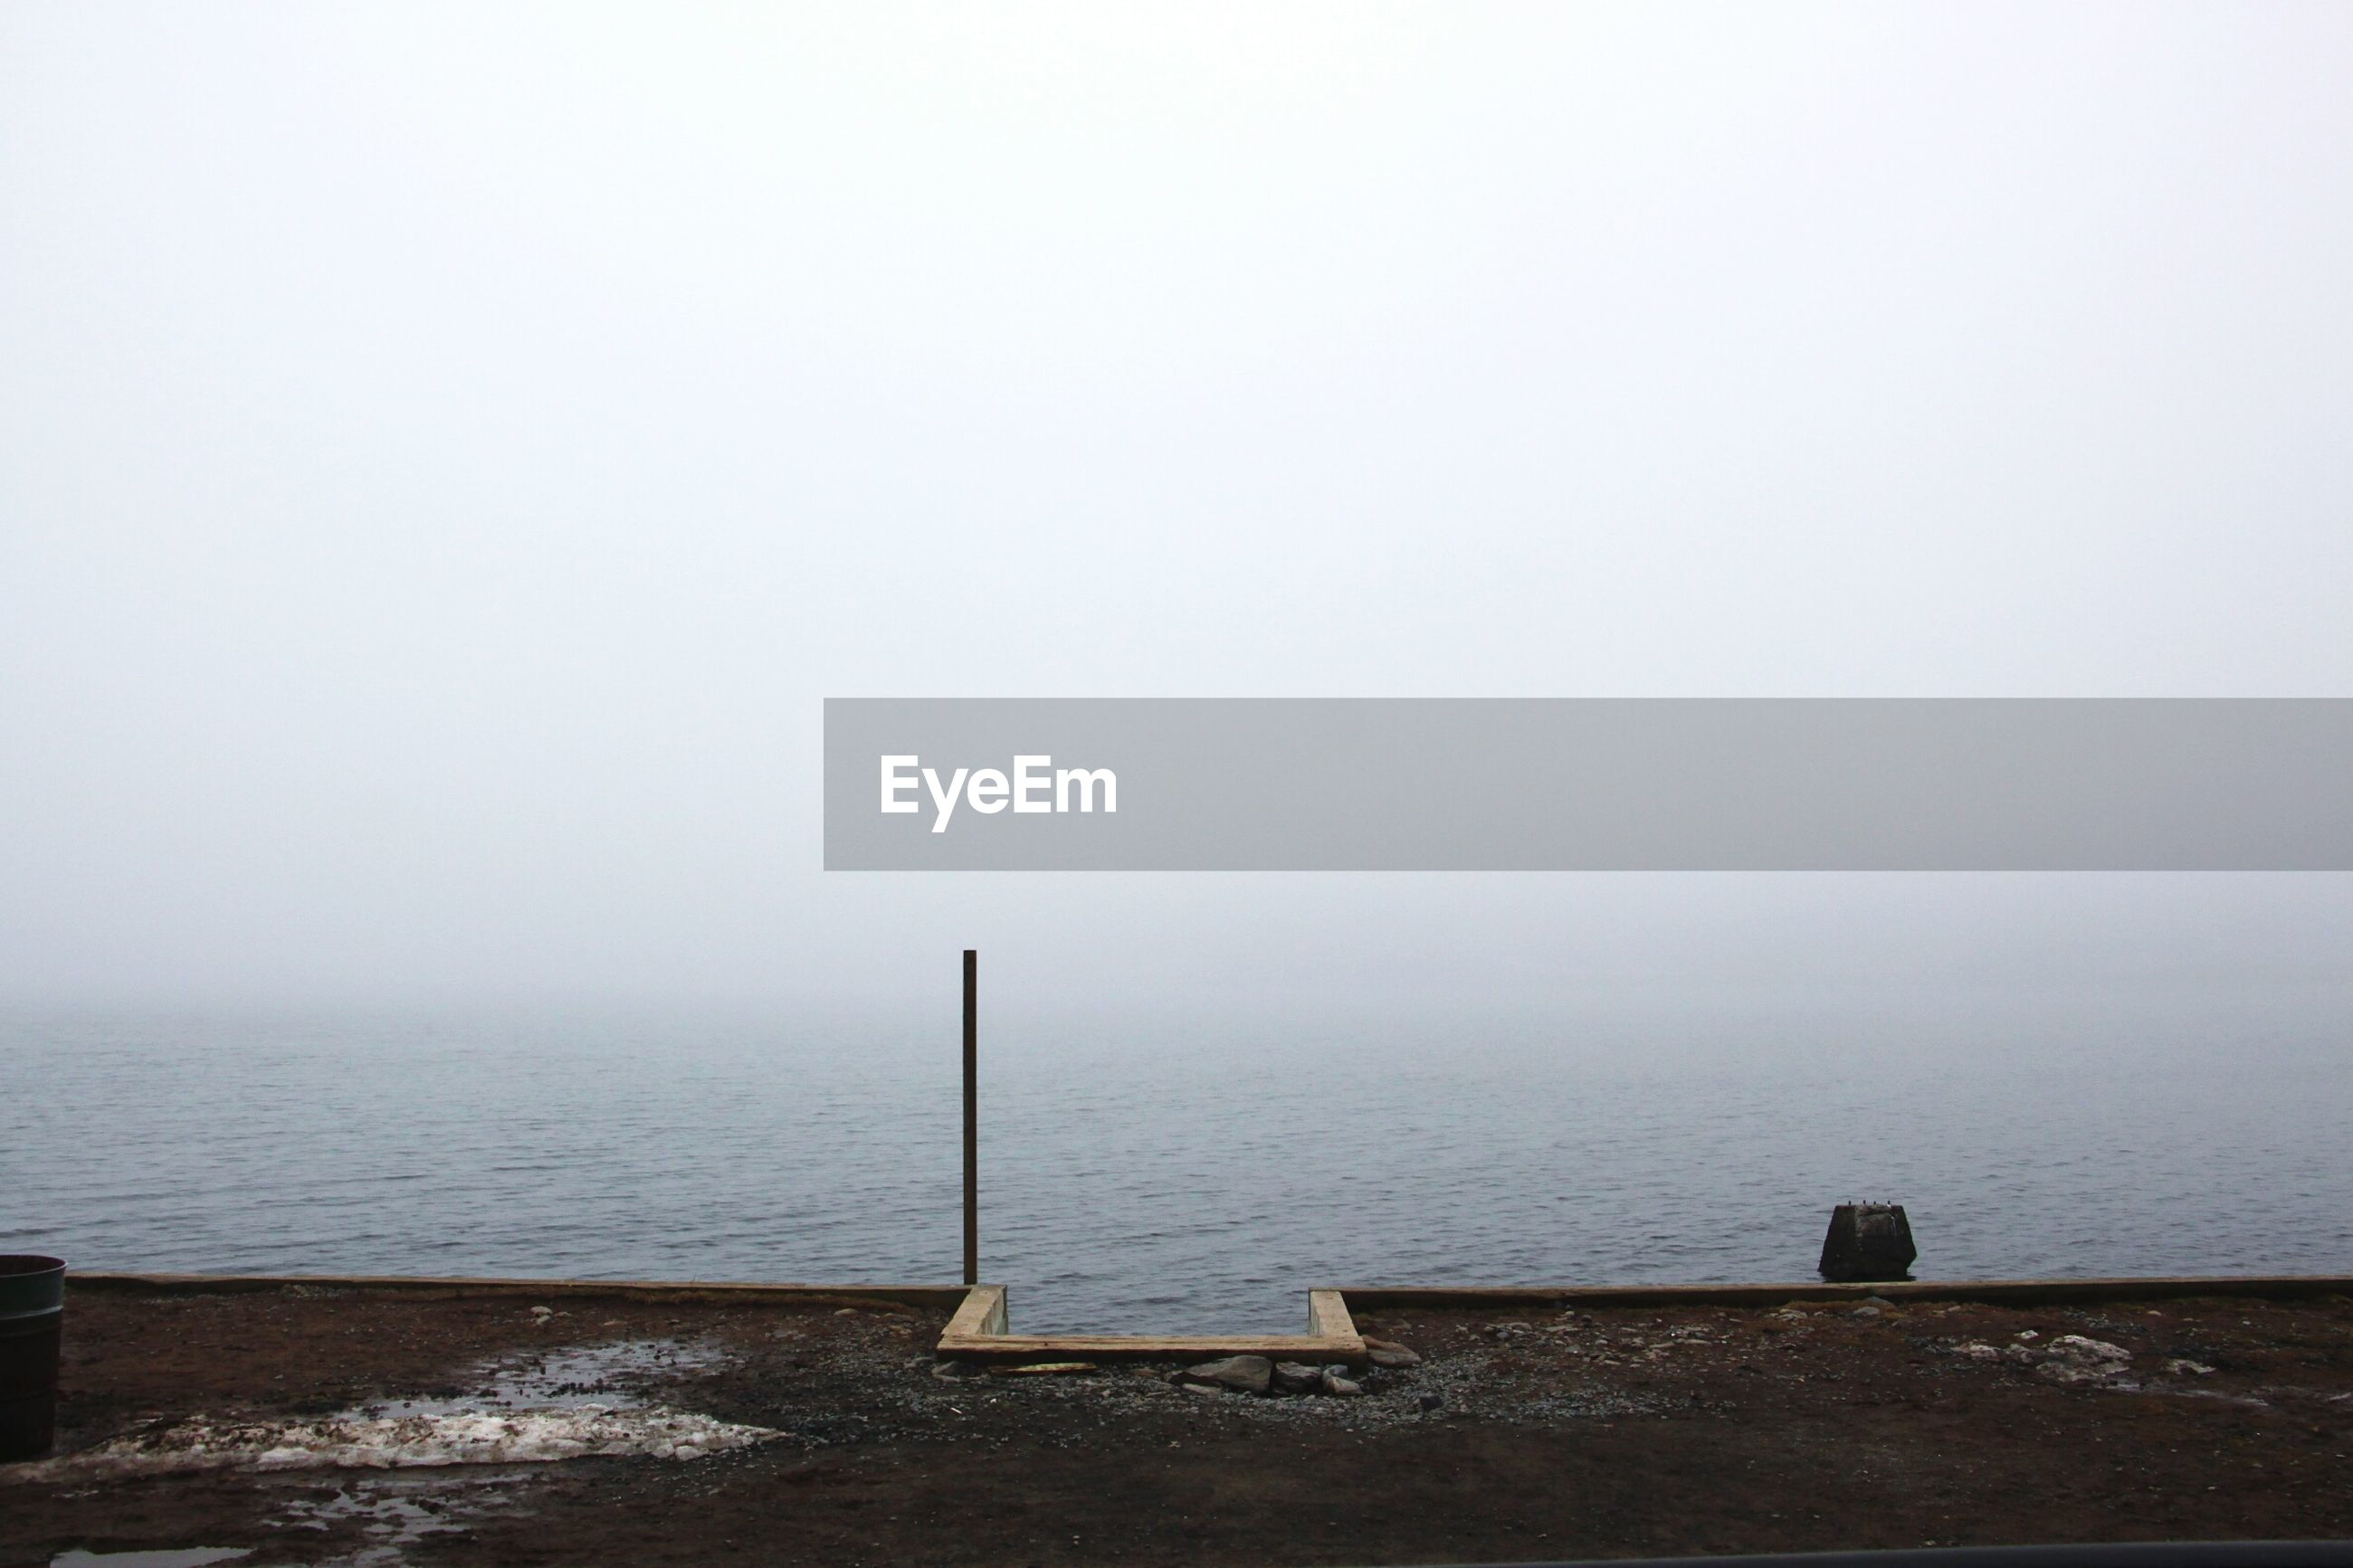 SCENIC VIEW OF SEA AGAINST SKY AT FOGGY WEATHER